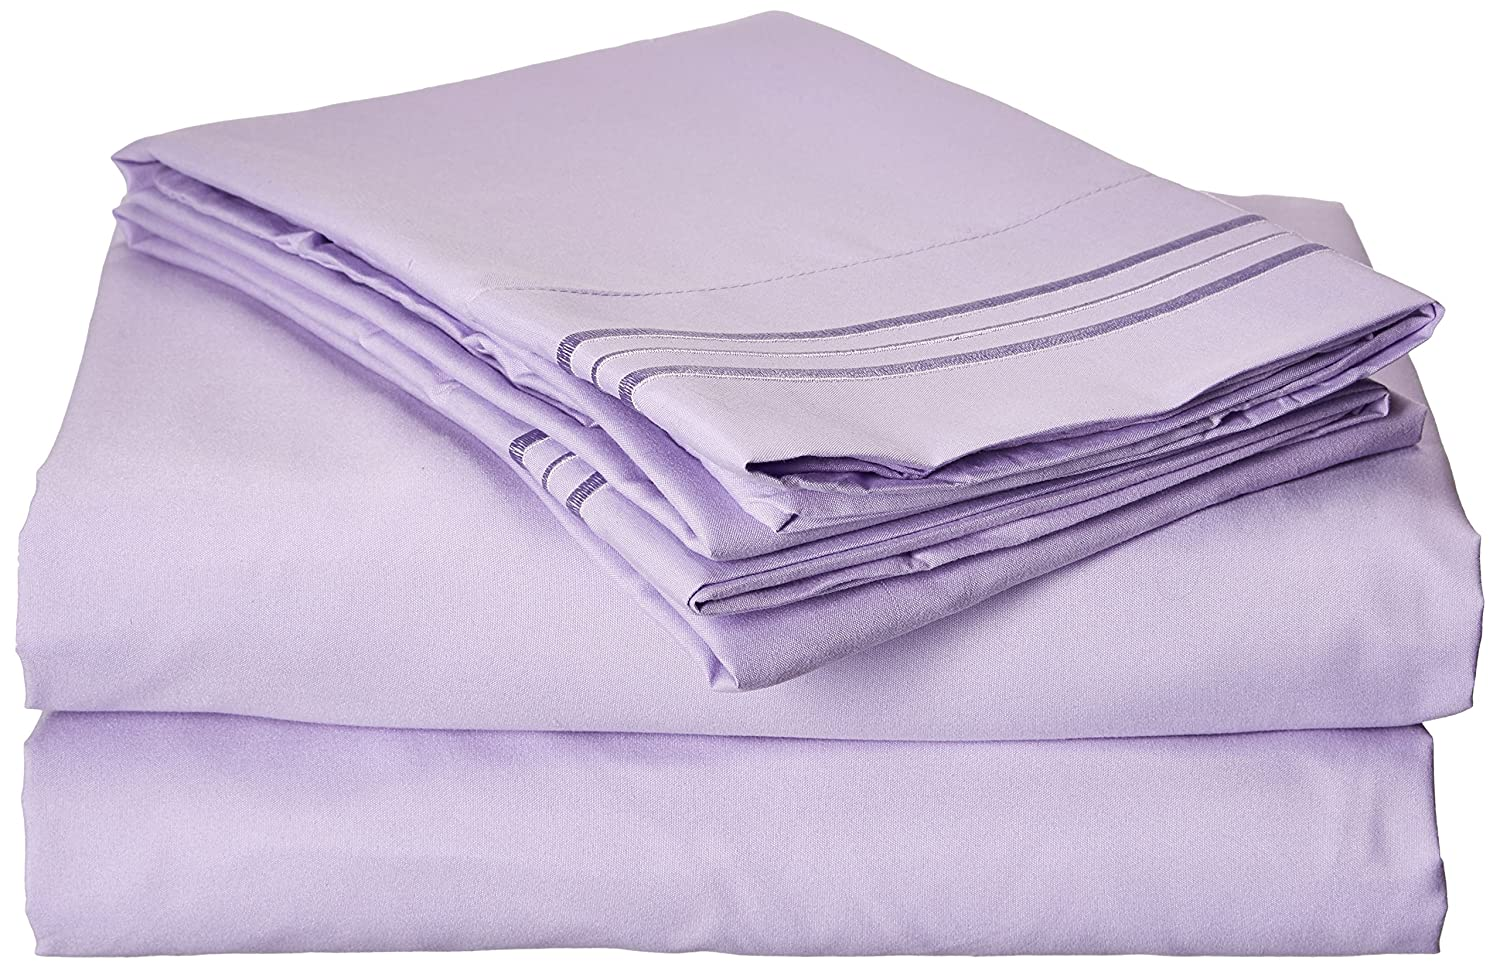 Clara Clark Premier 1800 Collection 4pc Bed Sheet Set - Queen Size, Lavender